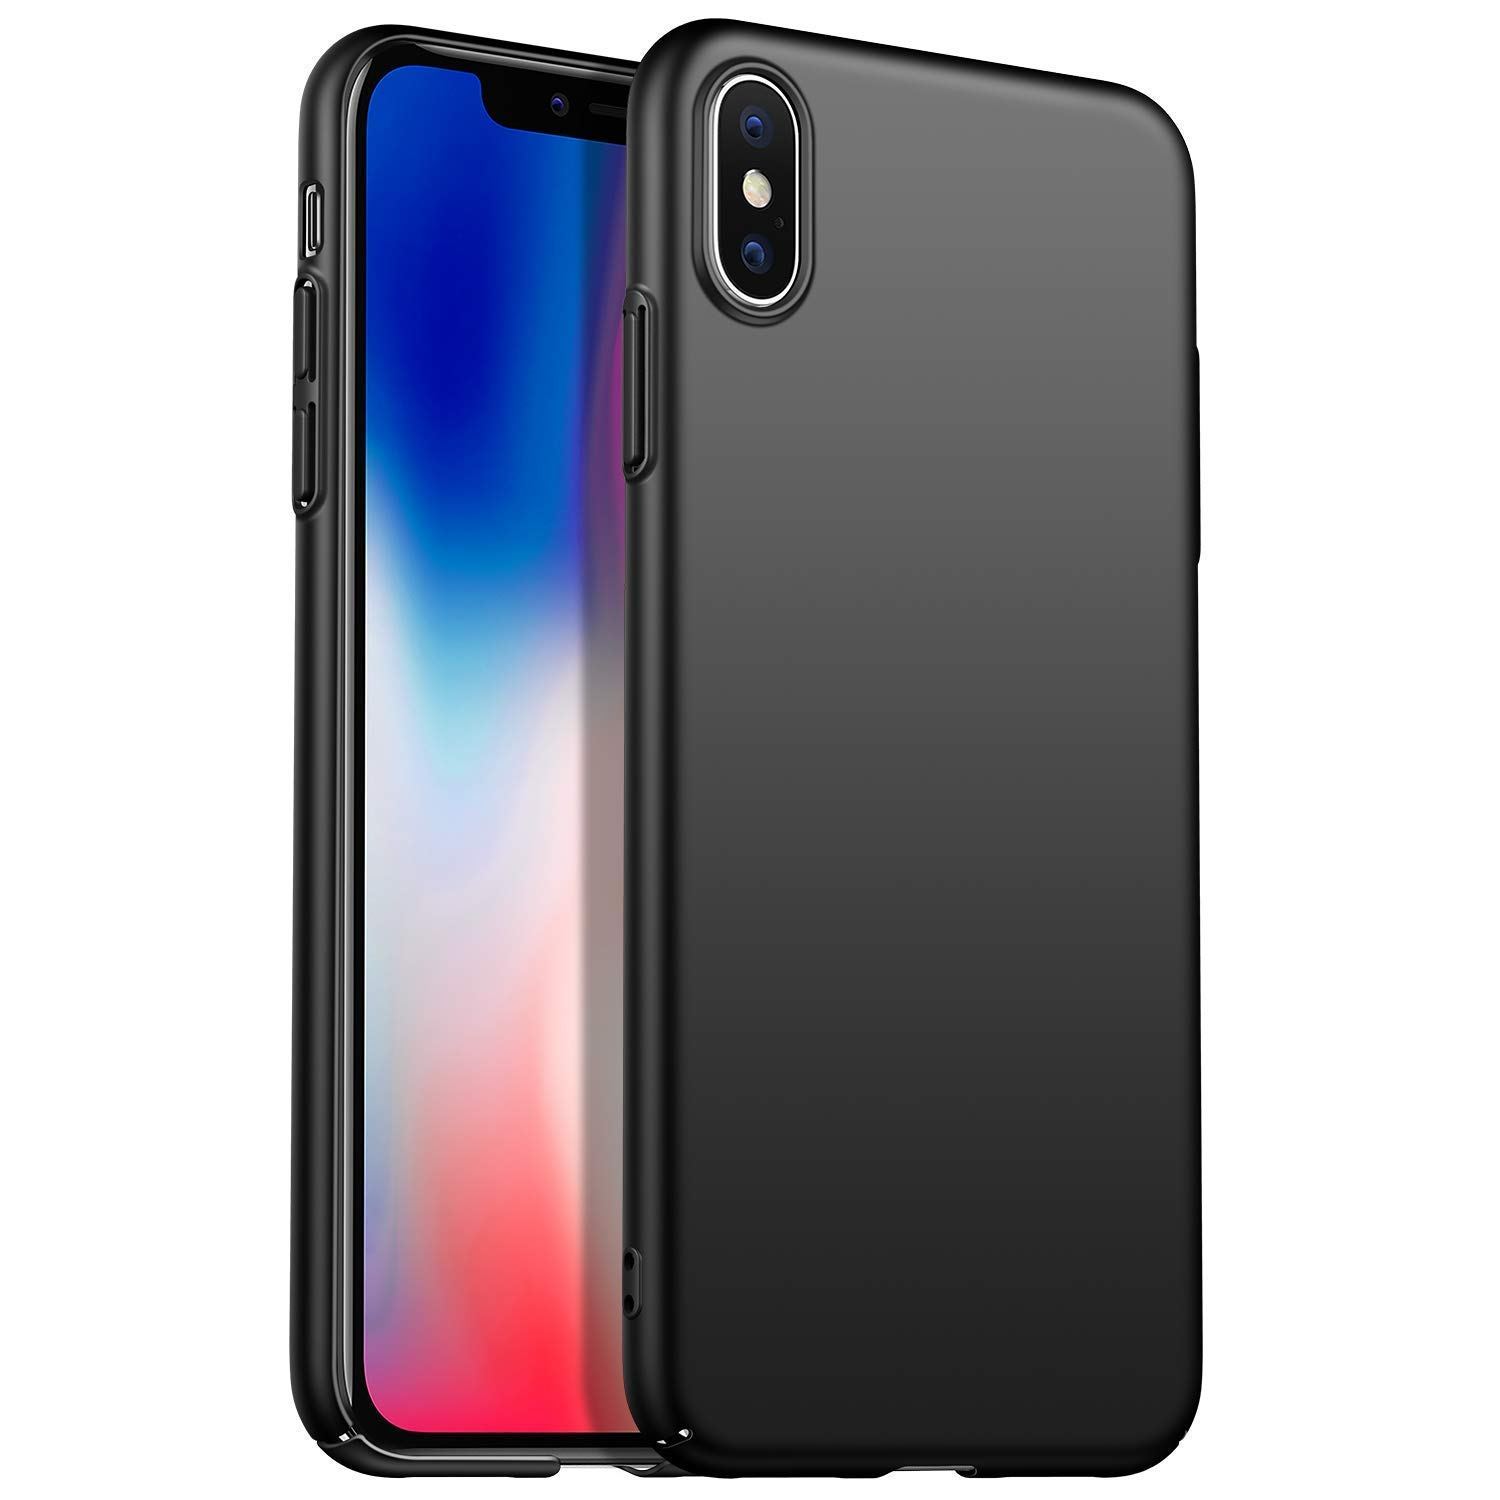 SAMHENG Slim Fit iPhone Xs Max Case, Hard Plastic Full Protective Anti-Scratch Resistant Cover Case Compatible with Apple iPhone Xs Max 6.5' (2018)